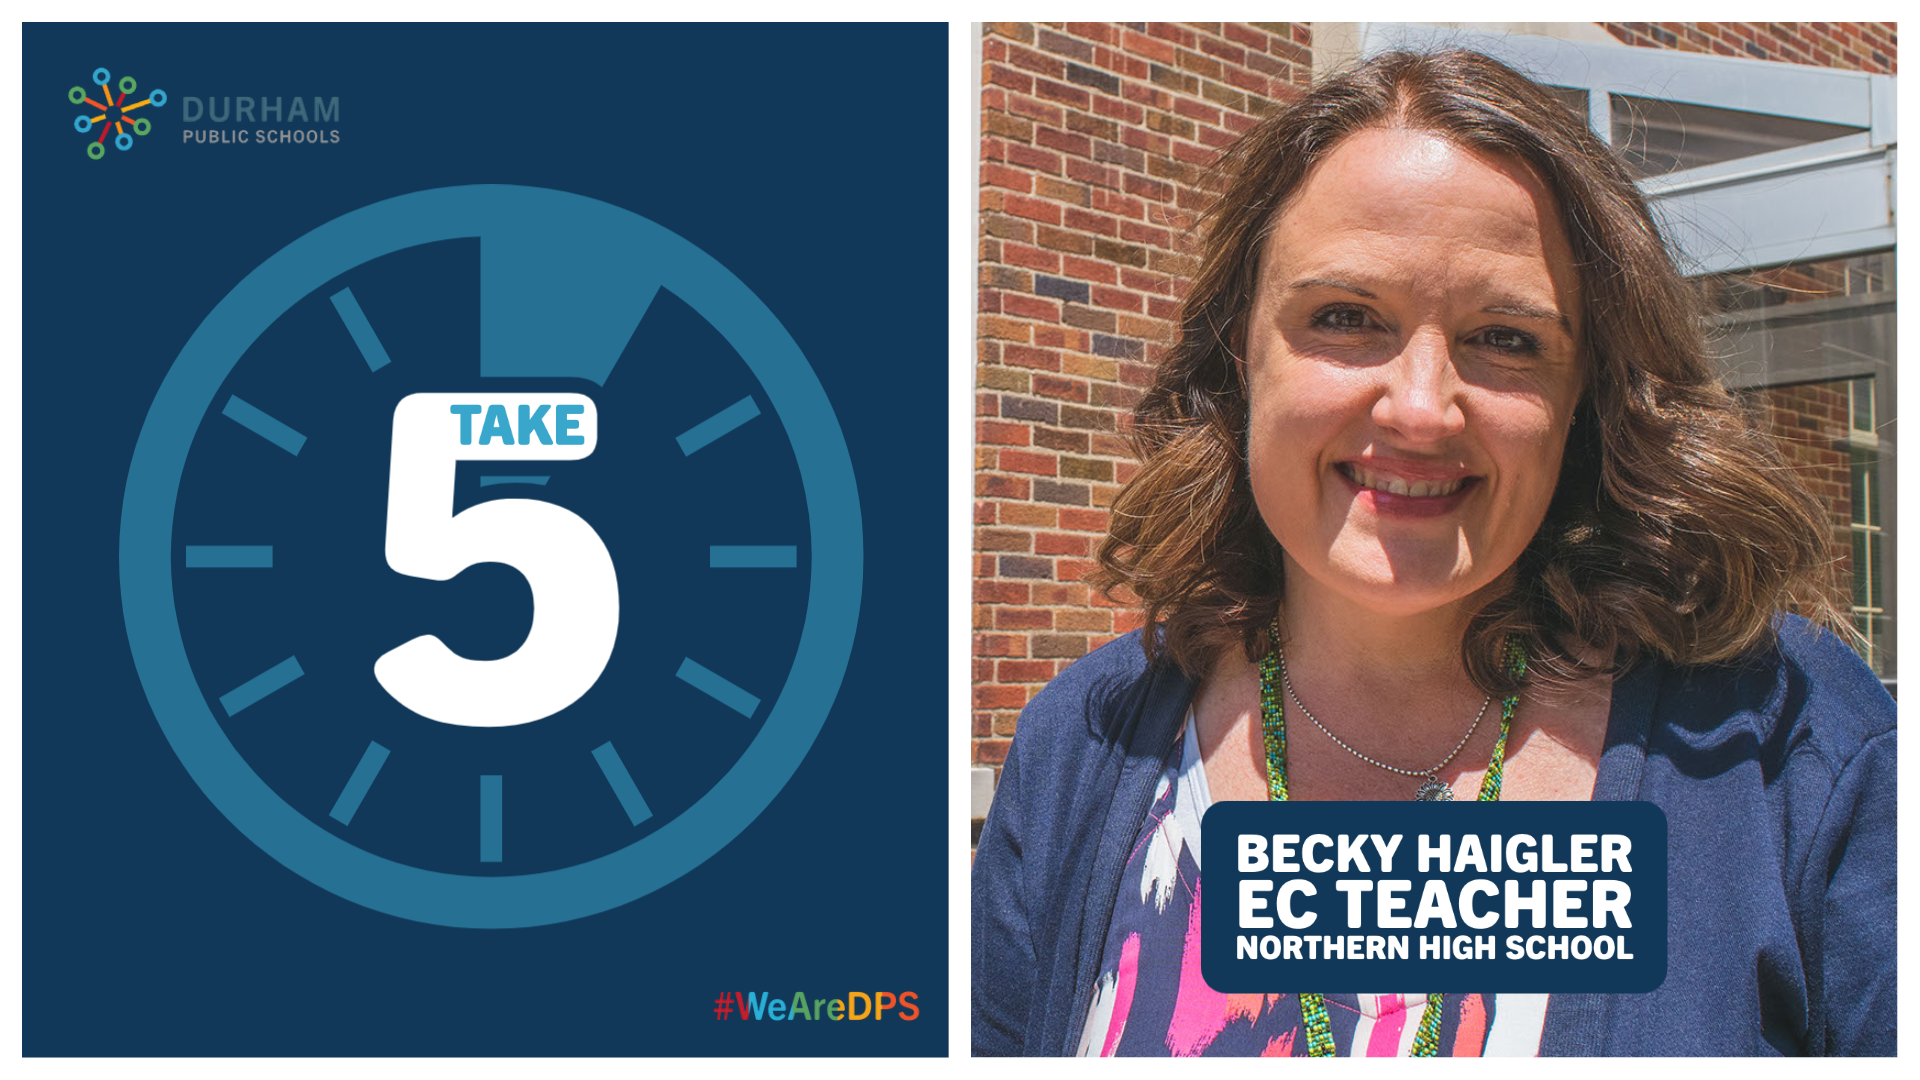 TAKE 5 with EC | Becky Haigler, EC Teacher